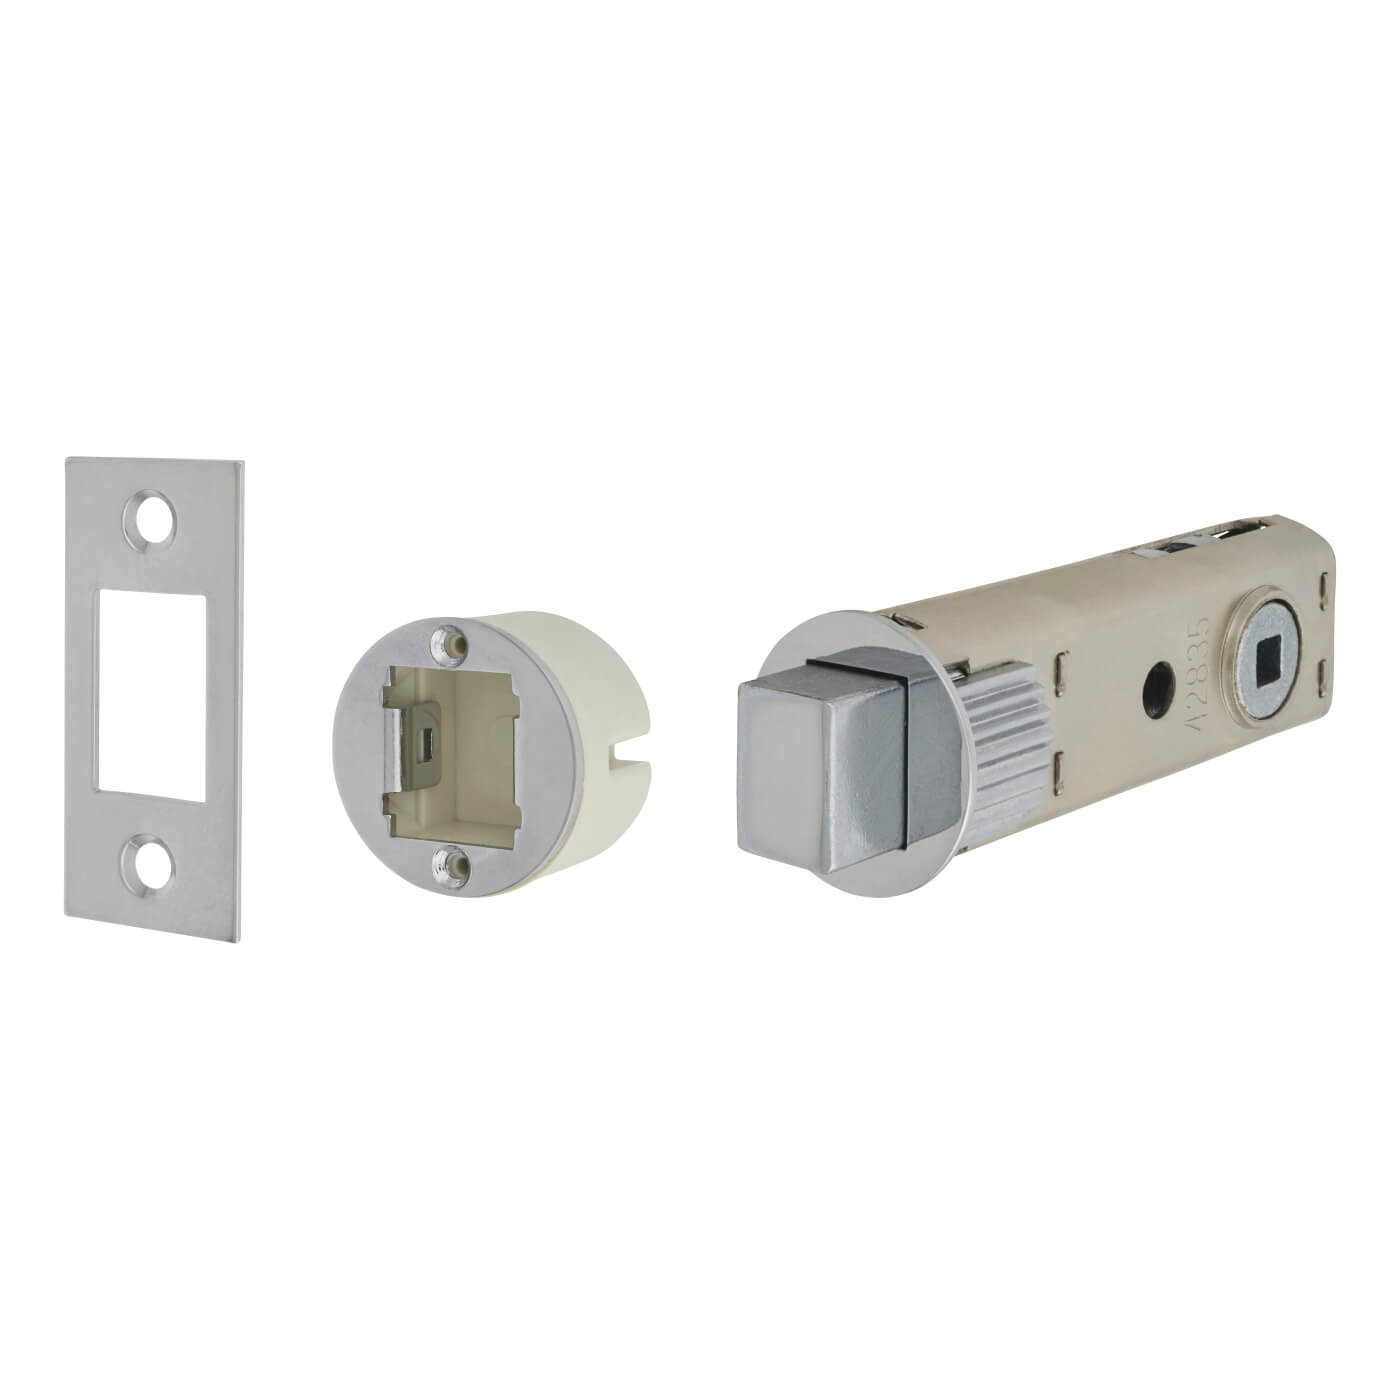 UNION JFL27 FastLatch Tubular Push-Fit Bathroom Deadbolt